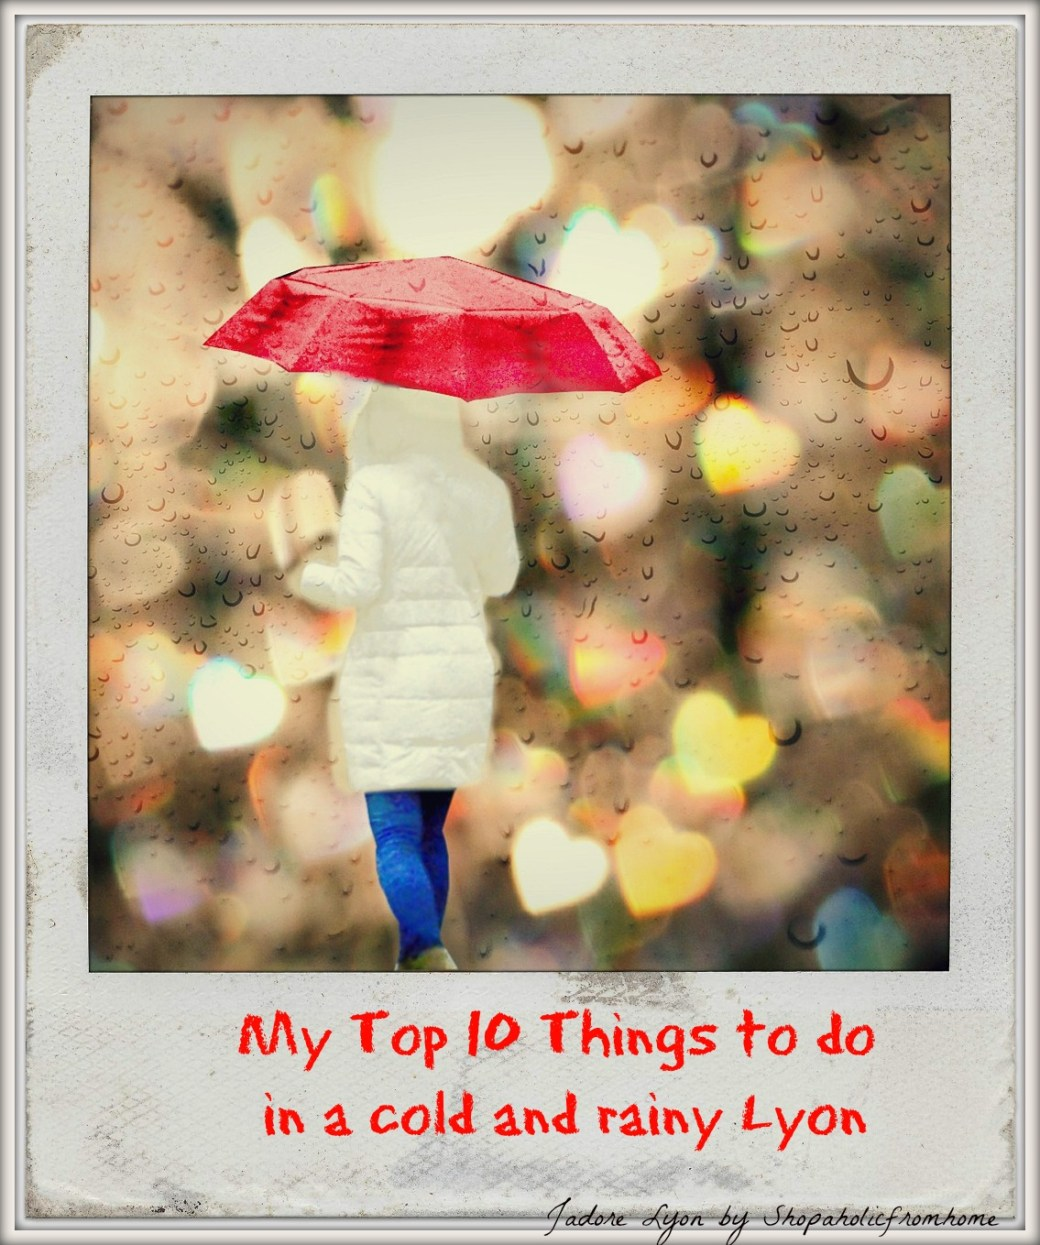 My Top 10 Things to do in a cold and rainy Lyon